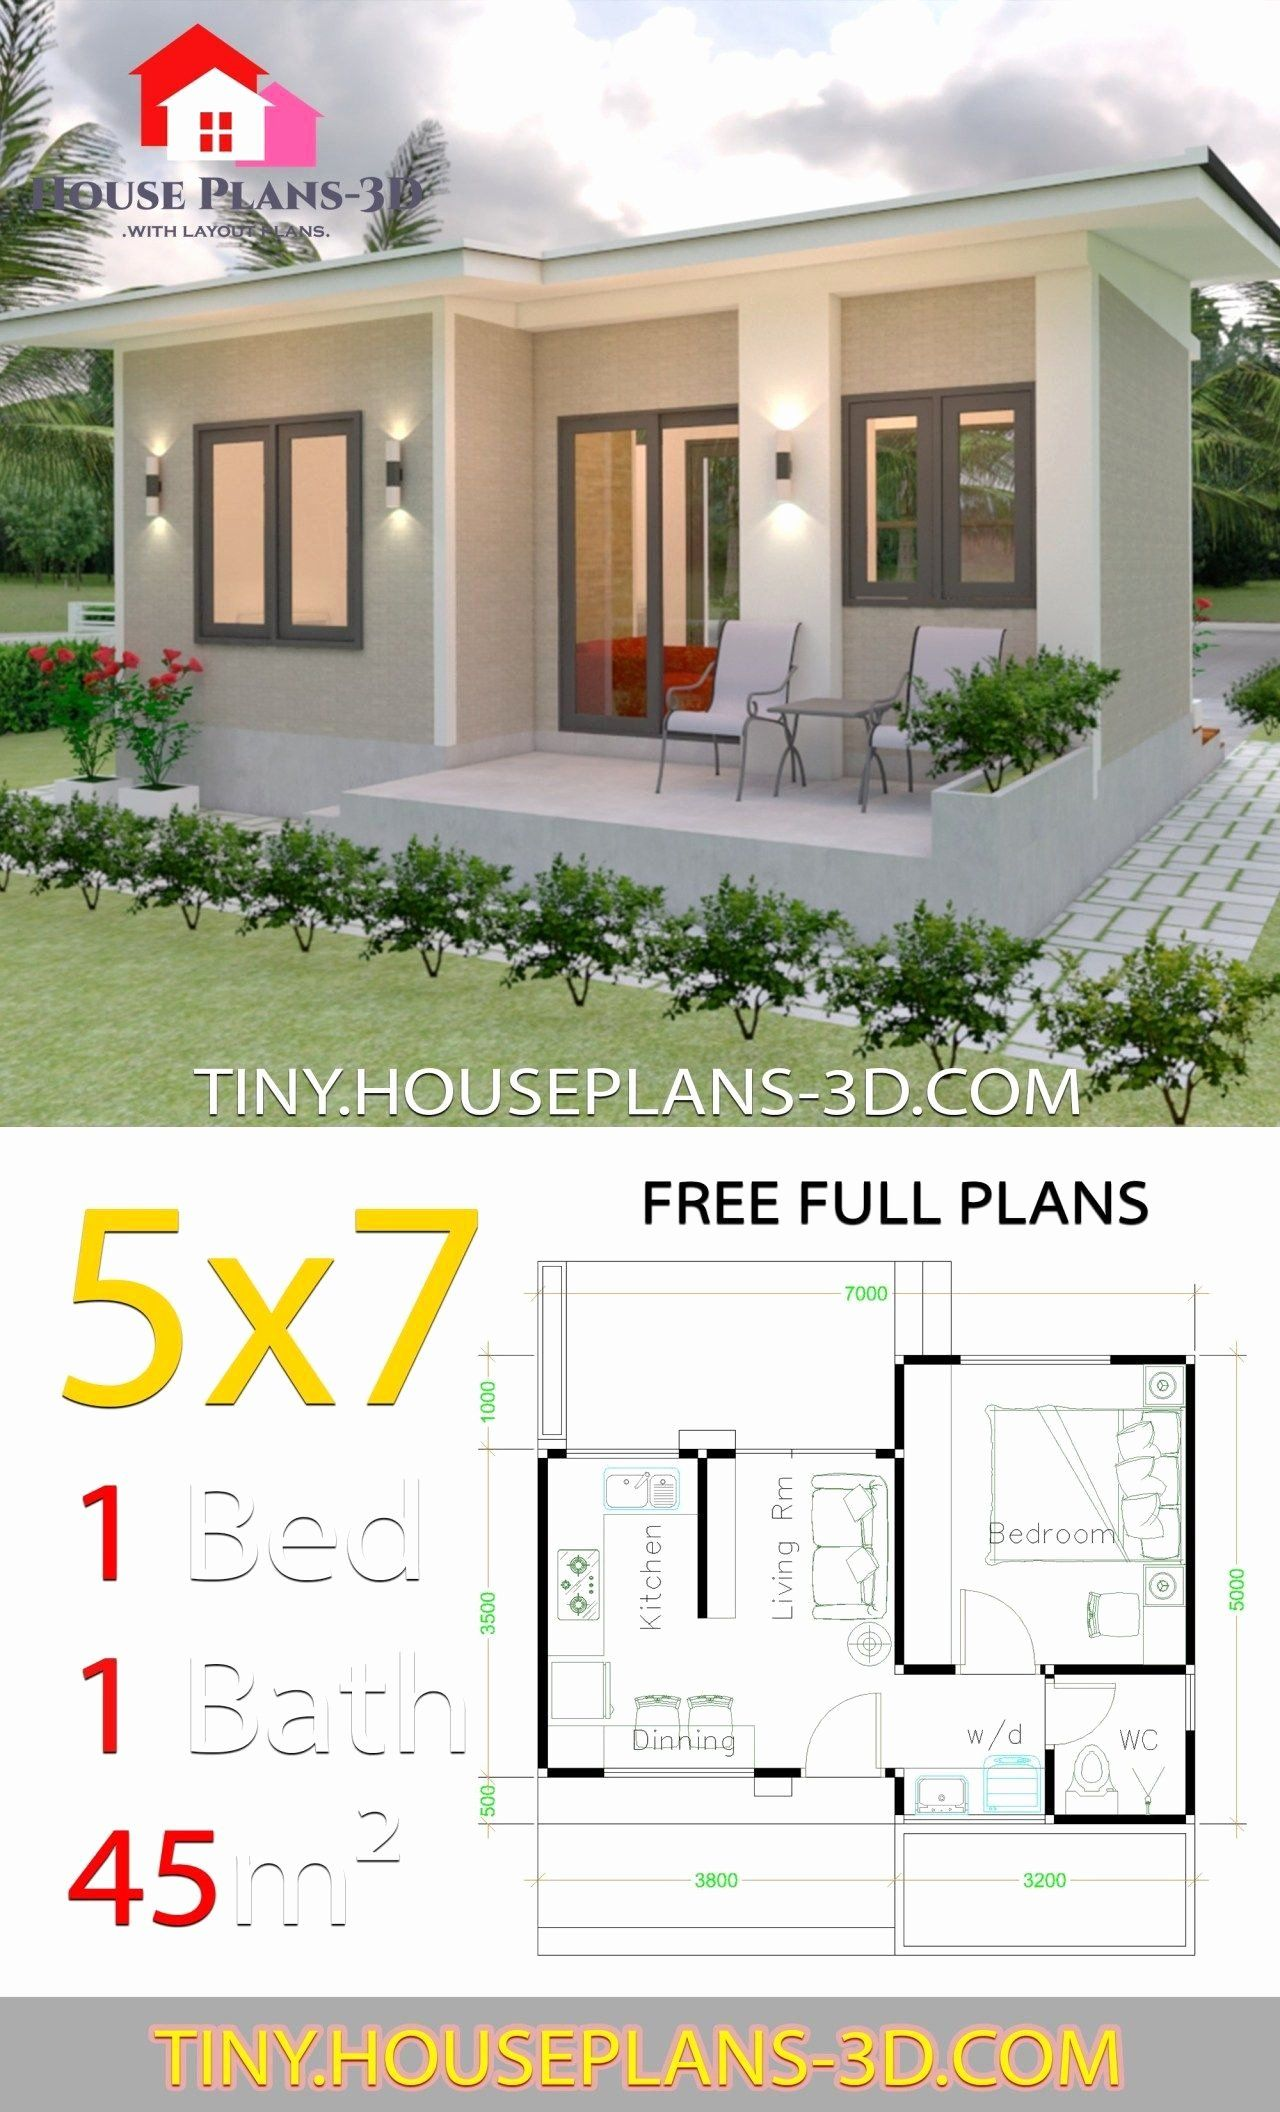 12 Small One Bedroom House Plans Homify.best in 2020